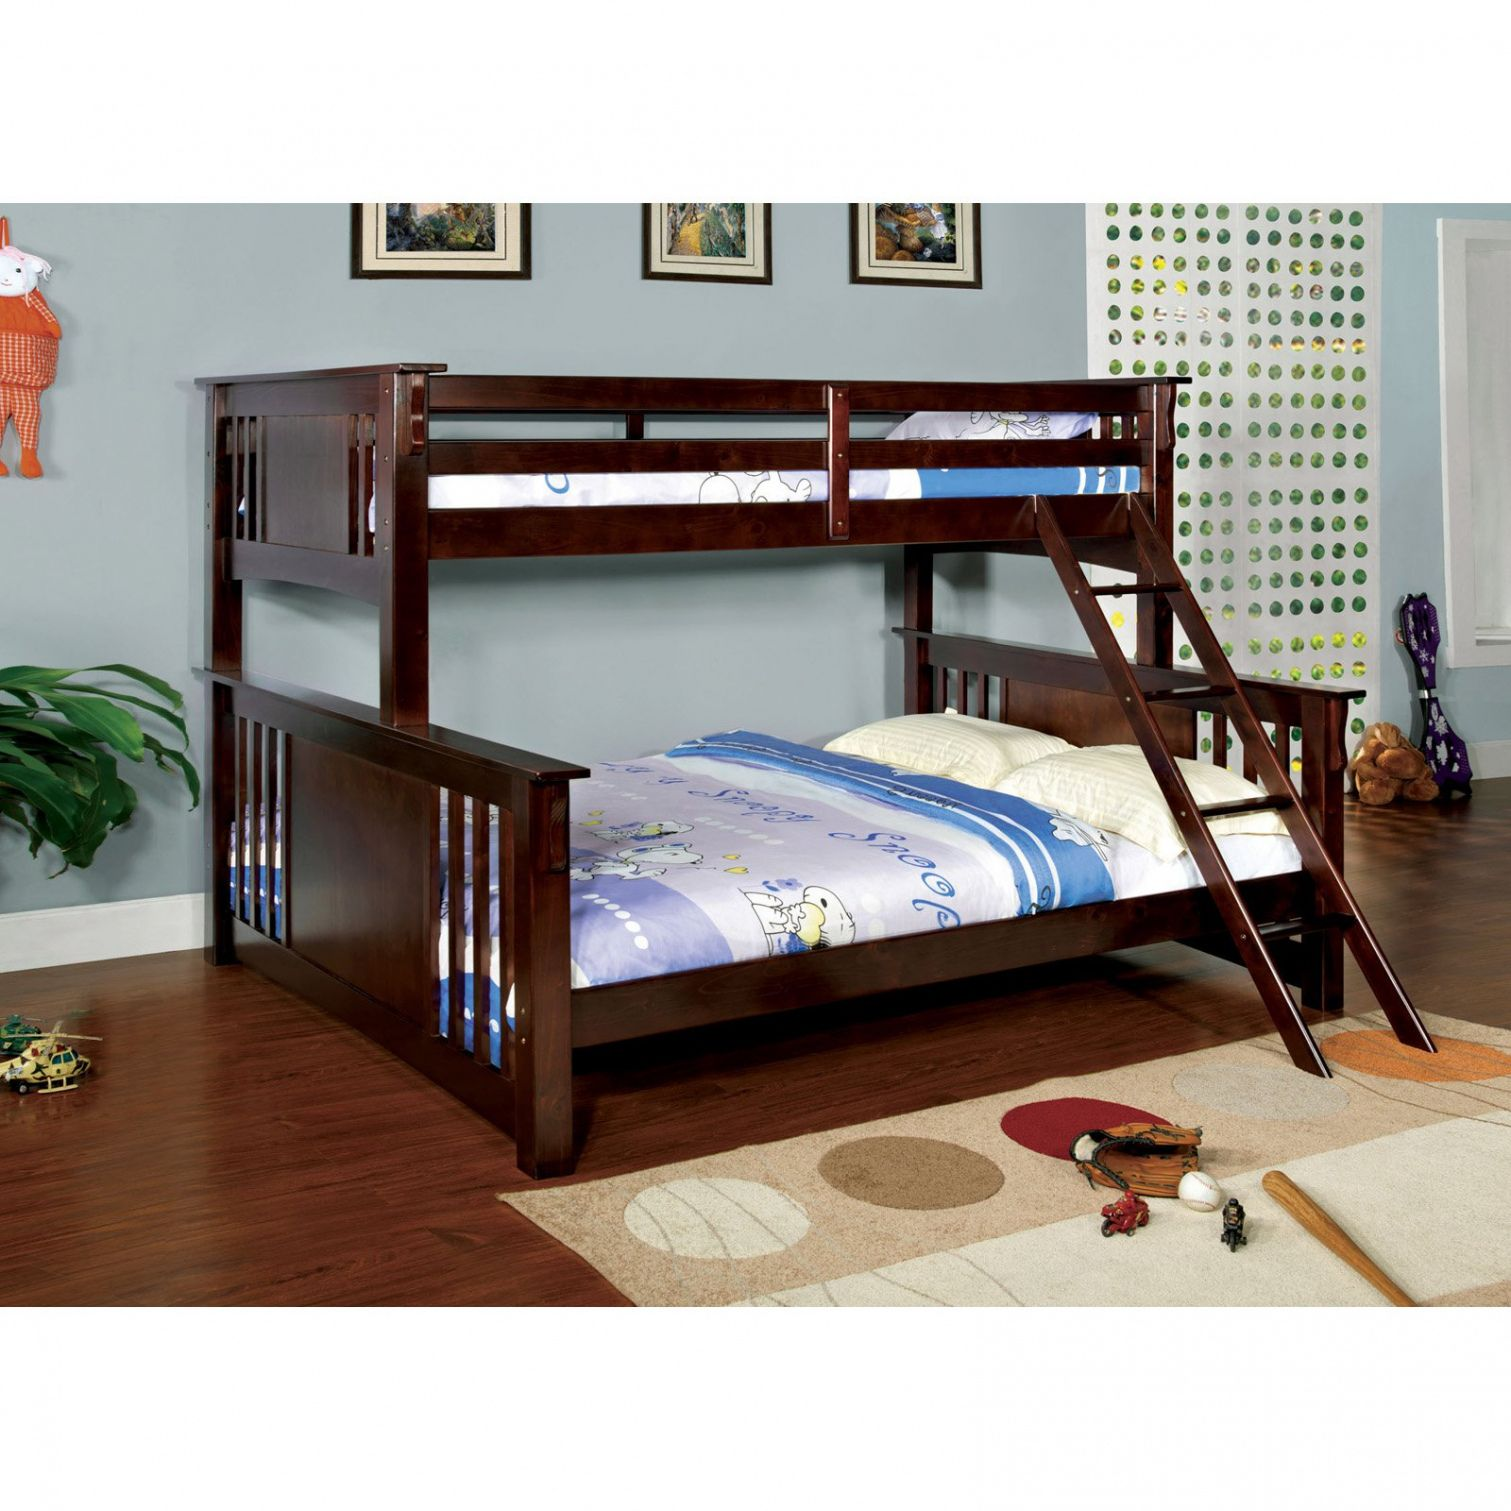 Queen loft bed with stairs  Twin Over Queen Bunk Bed Walmart  Interior Paint Color Trends Check